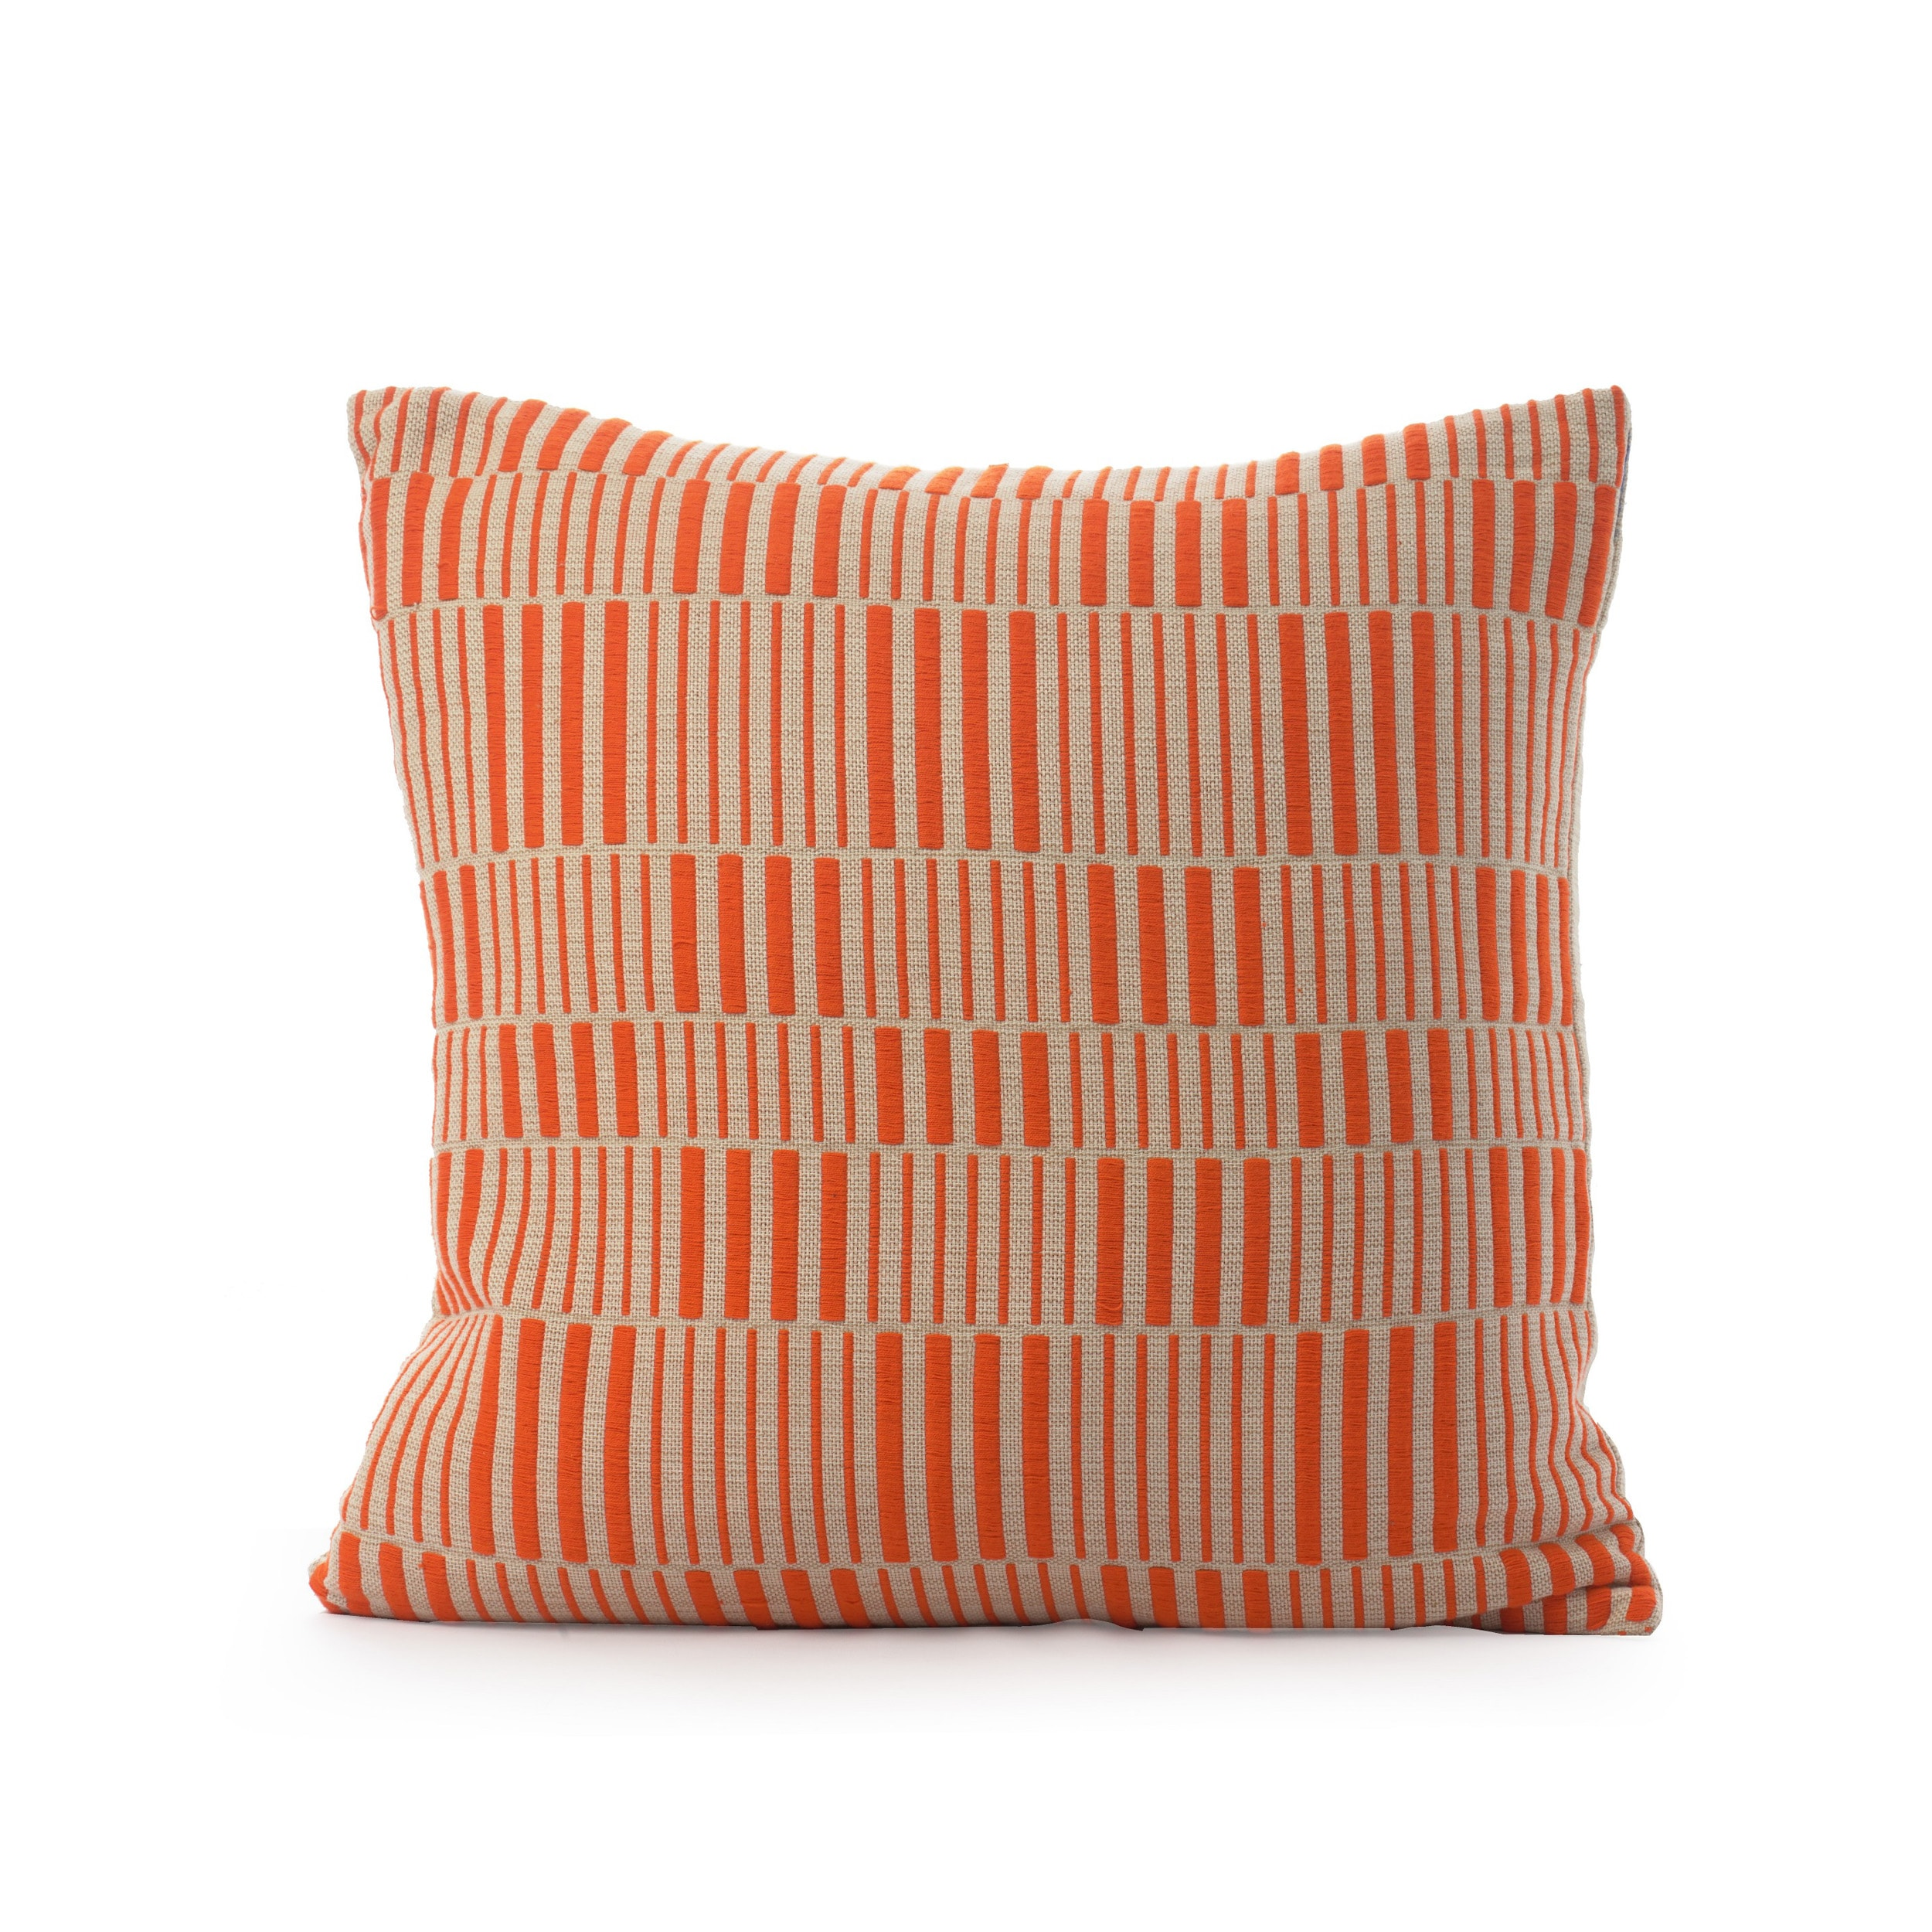 EMBROIDERED STRIPED CUSHION